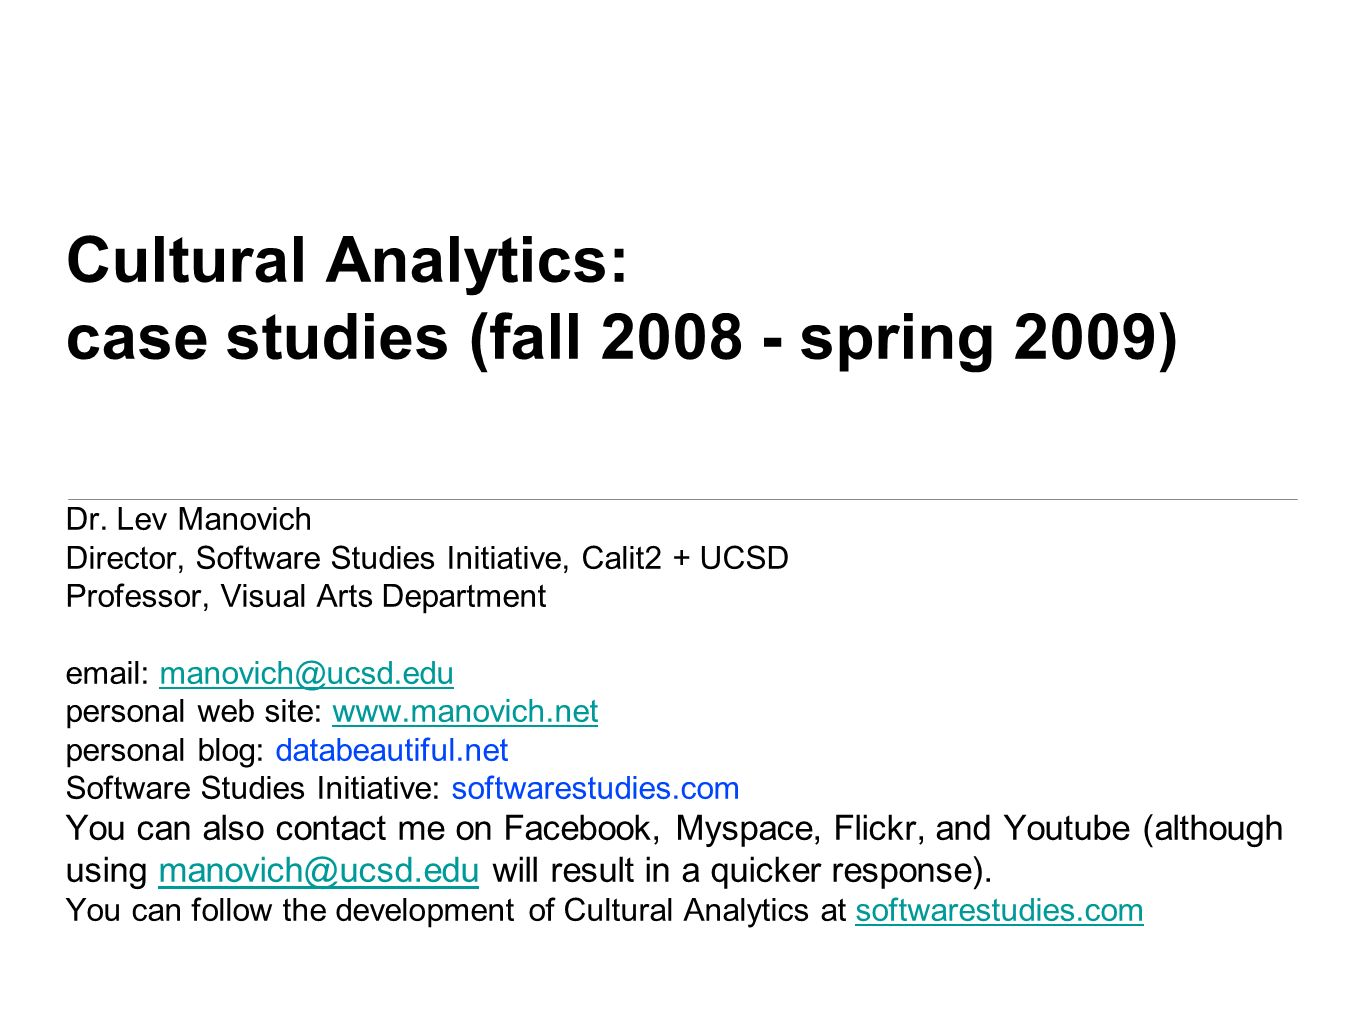 you can find all material in this presentation at softwarestudies.com